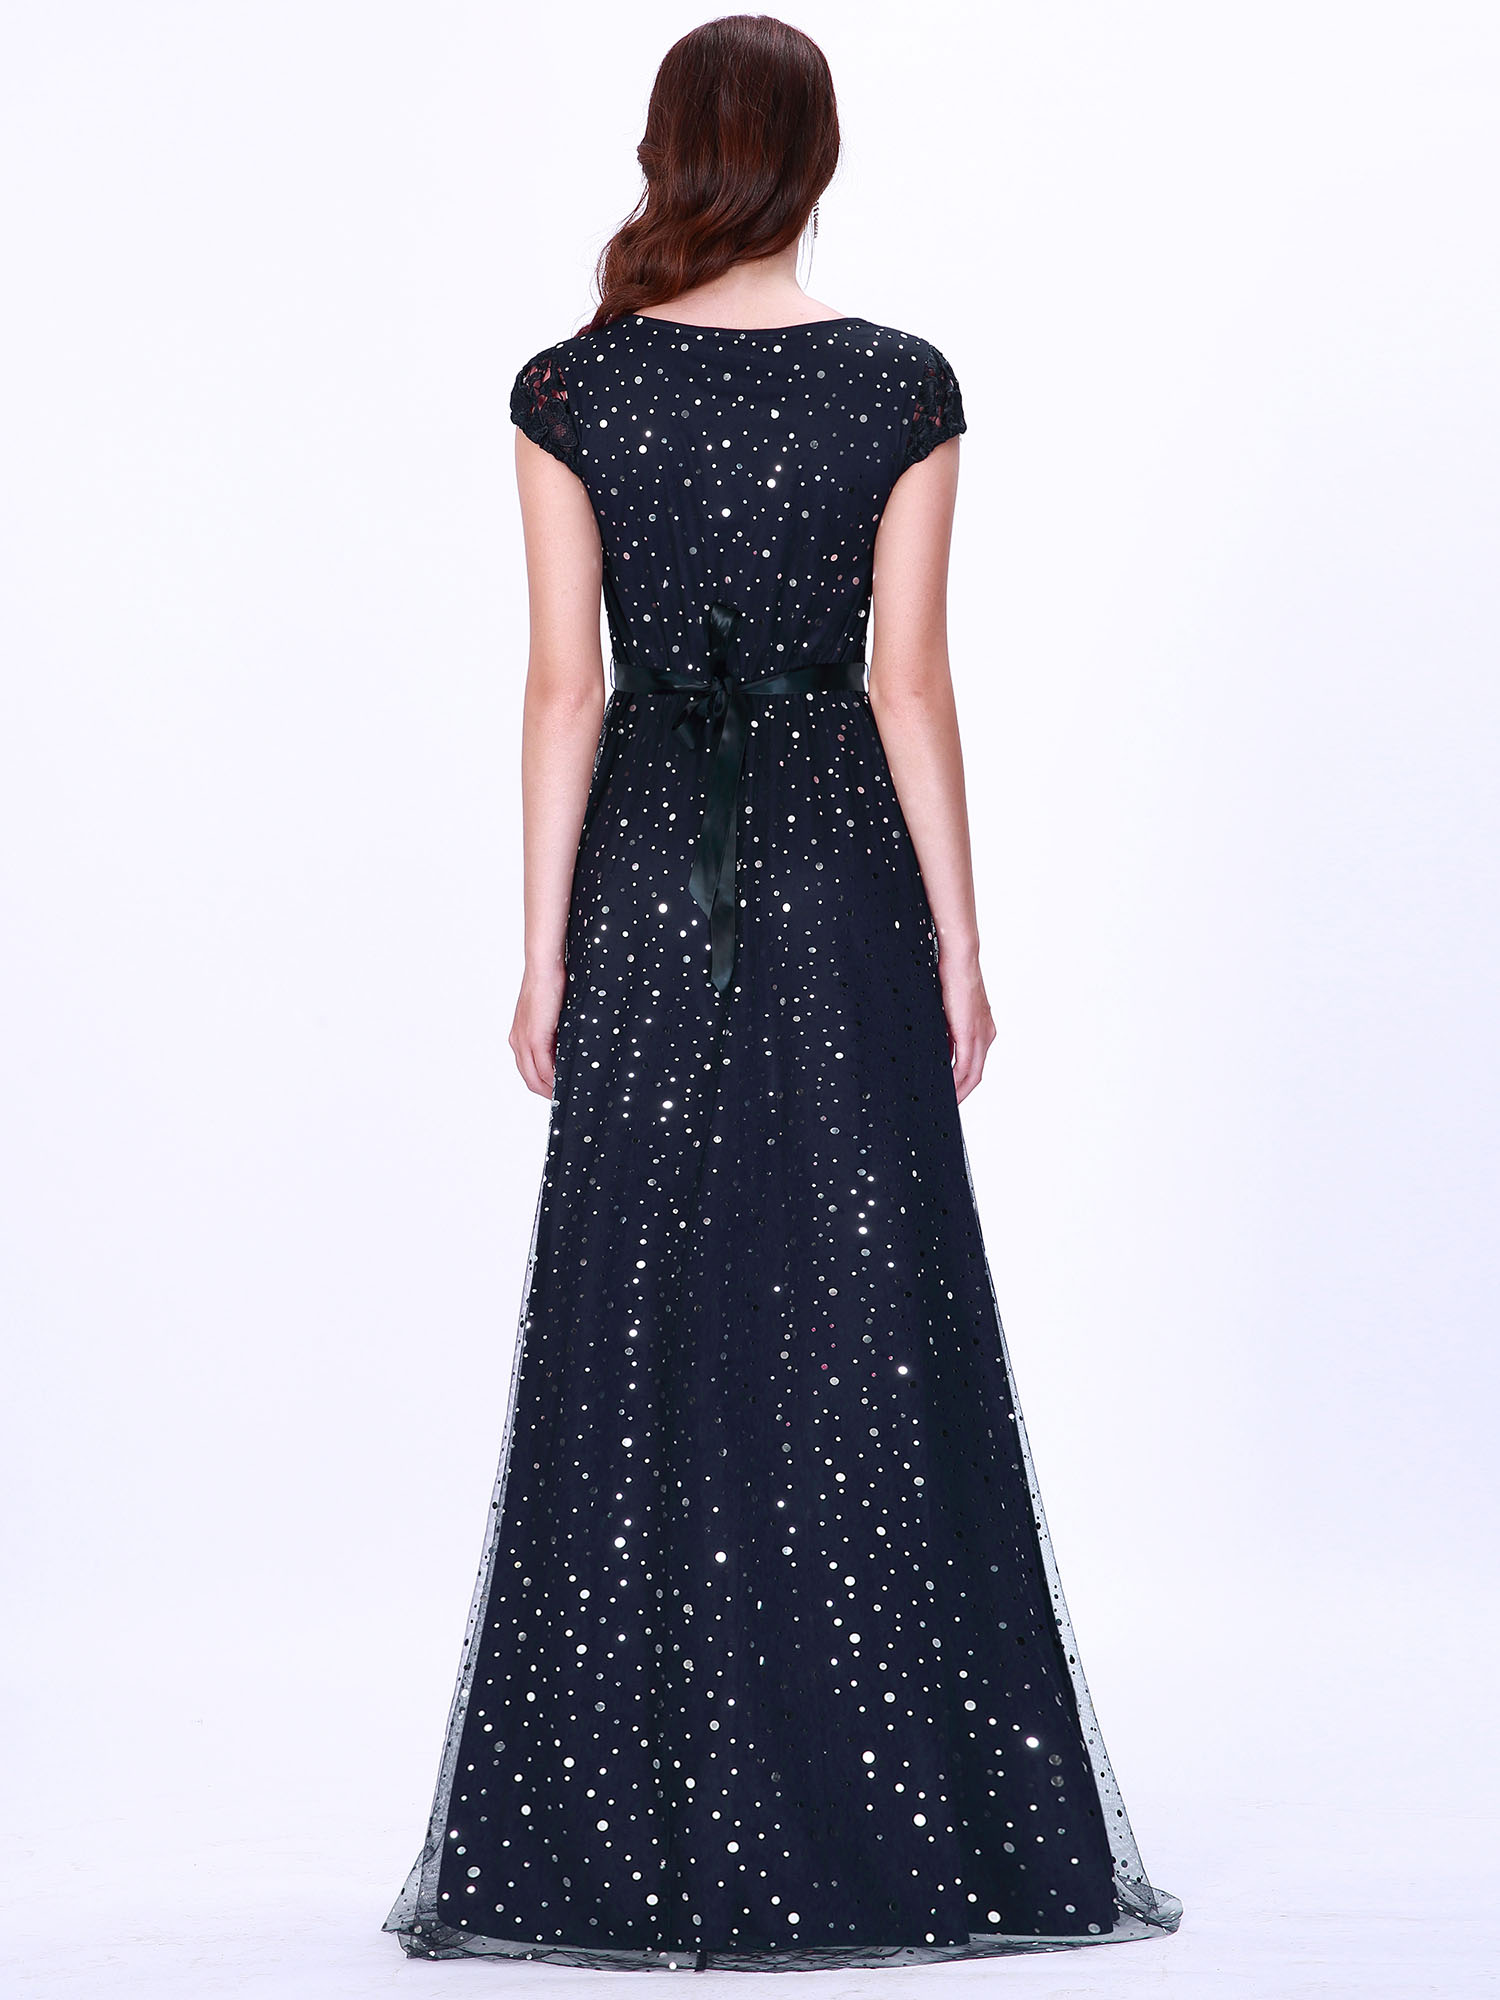 Ever-pretty-US-Formal-A-line-Cocktail-Party-Dresses-Homecoming-Evening-Prom-Gown thumbnail 4